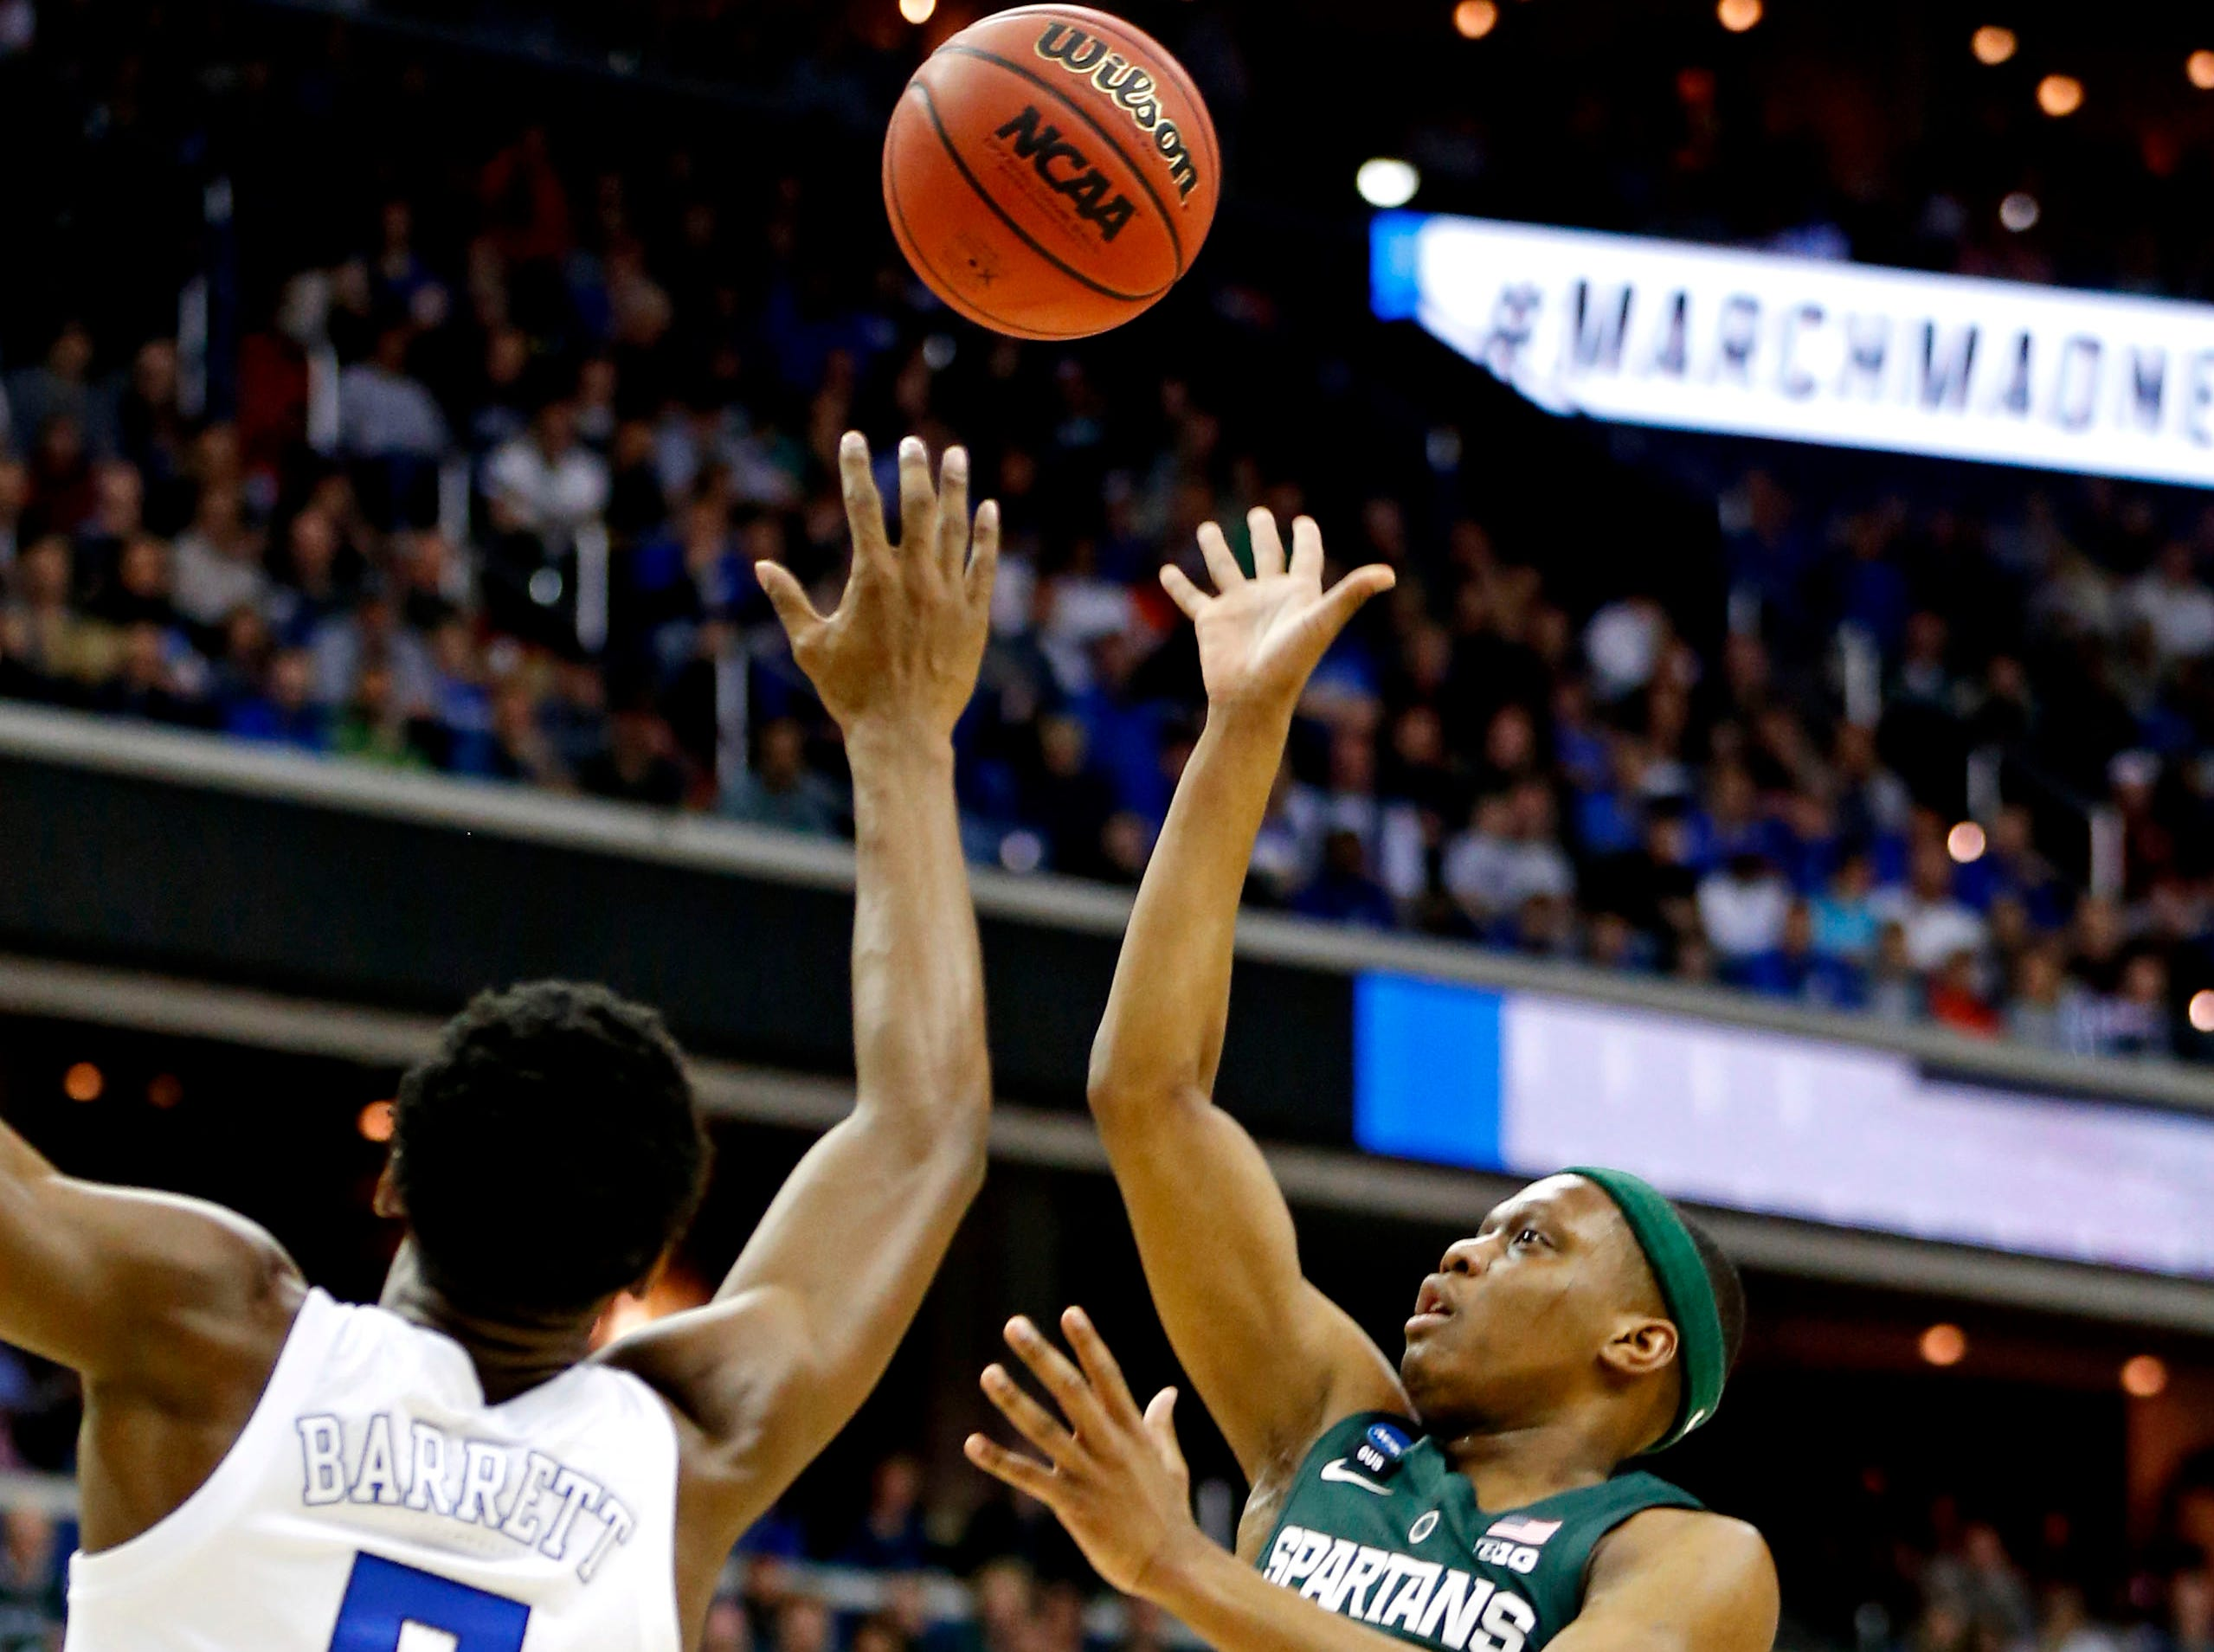 Mar 31, 2019; Washington, DC, USA; Michigan State Spartans guard Cassius Winston (5) shoots the ball against Duke Blue Devils forward RJ Barrett (5) during the first half in the championship game of the east regional of the 2019 NCAA Tournament at Capital One Arena. Mandatory Credit: Amber Searls-USA TODAY Sports